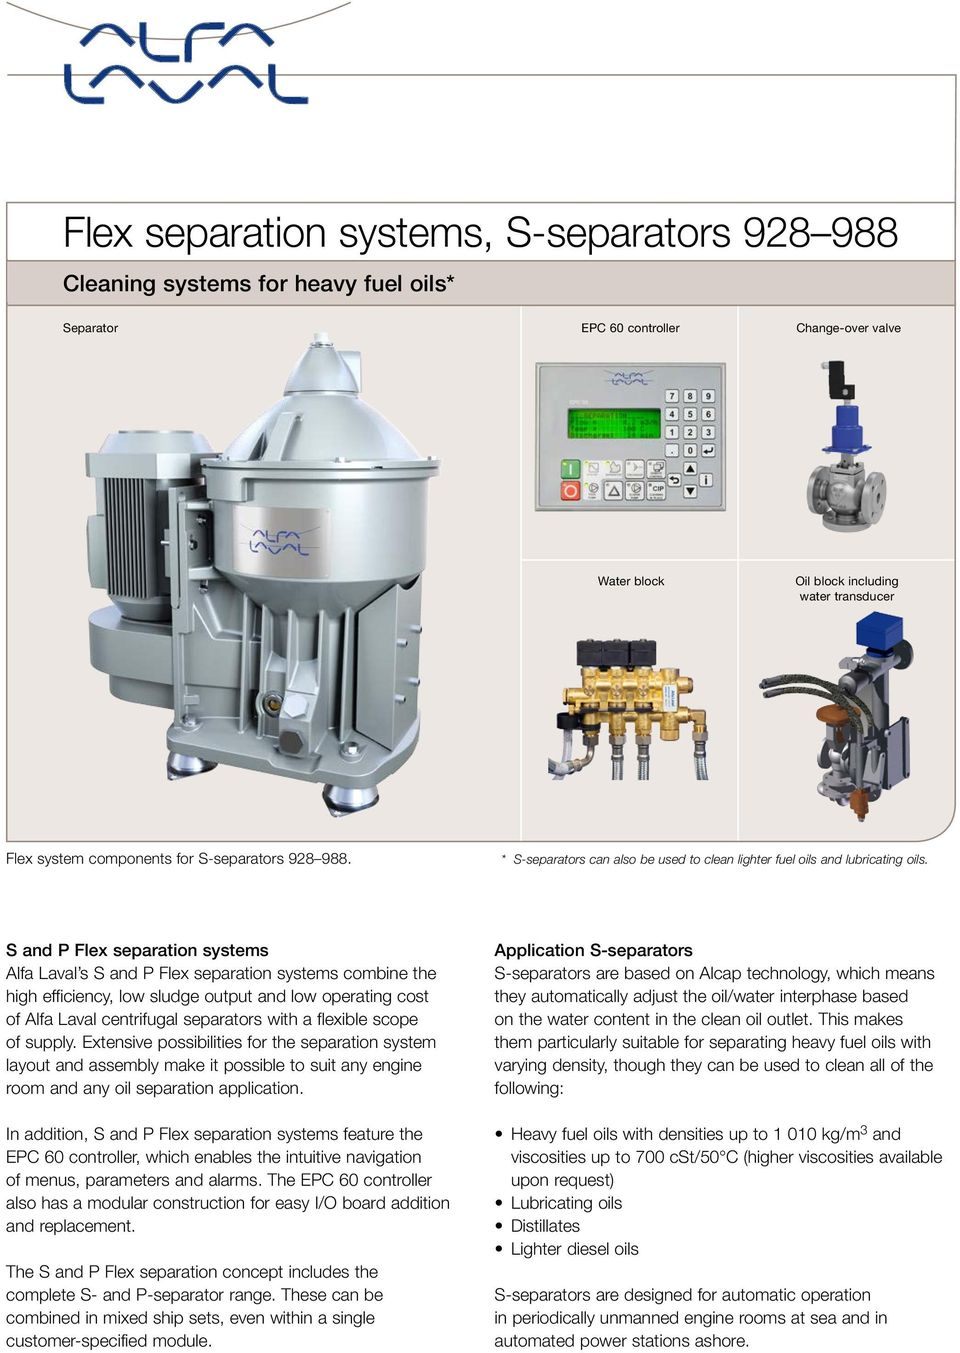 S and P Flex separation systems Alfa Laval s S and P Flex separation systems com bine the high efficiency, low sludge output and low operating cost of Alfa Laval centrifugal separators with a